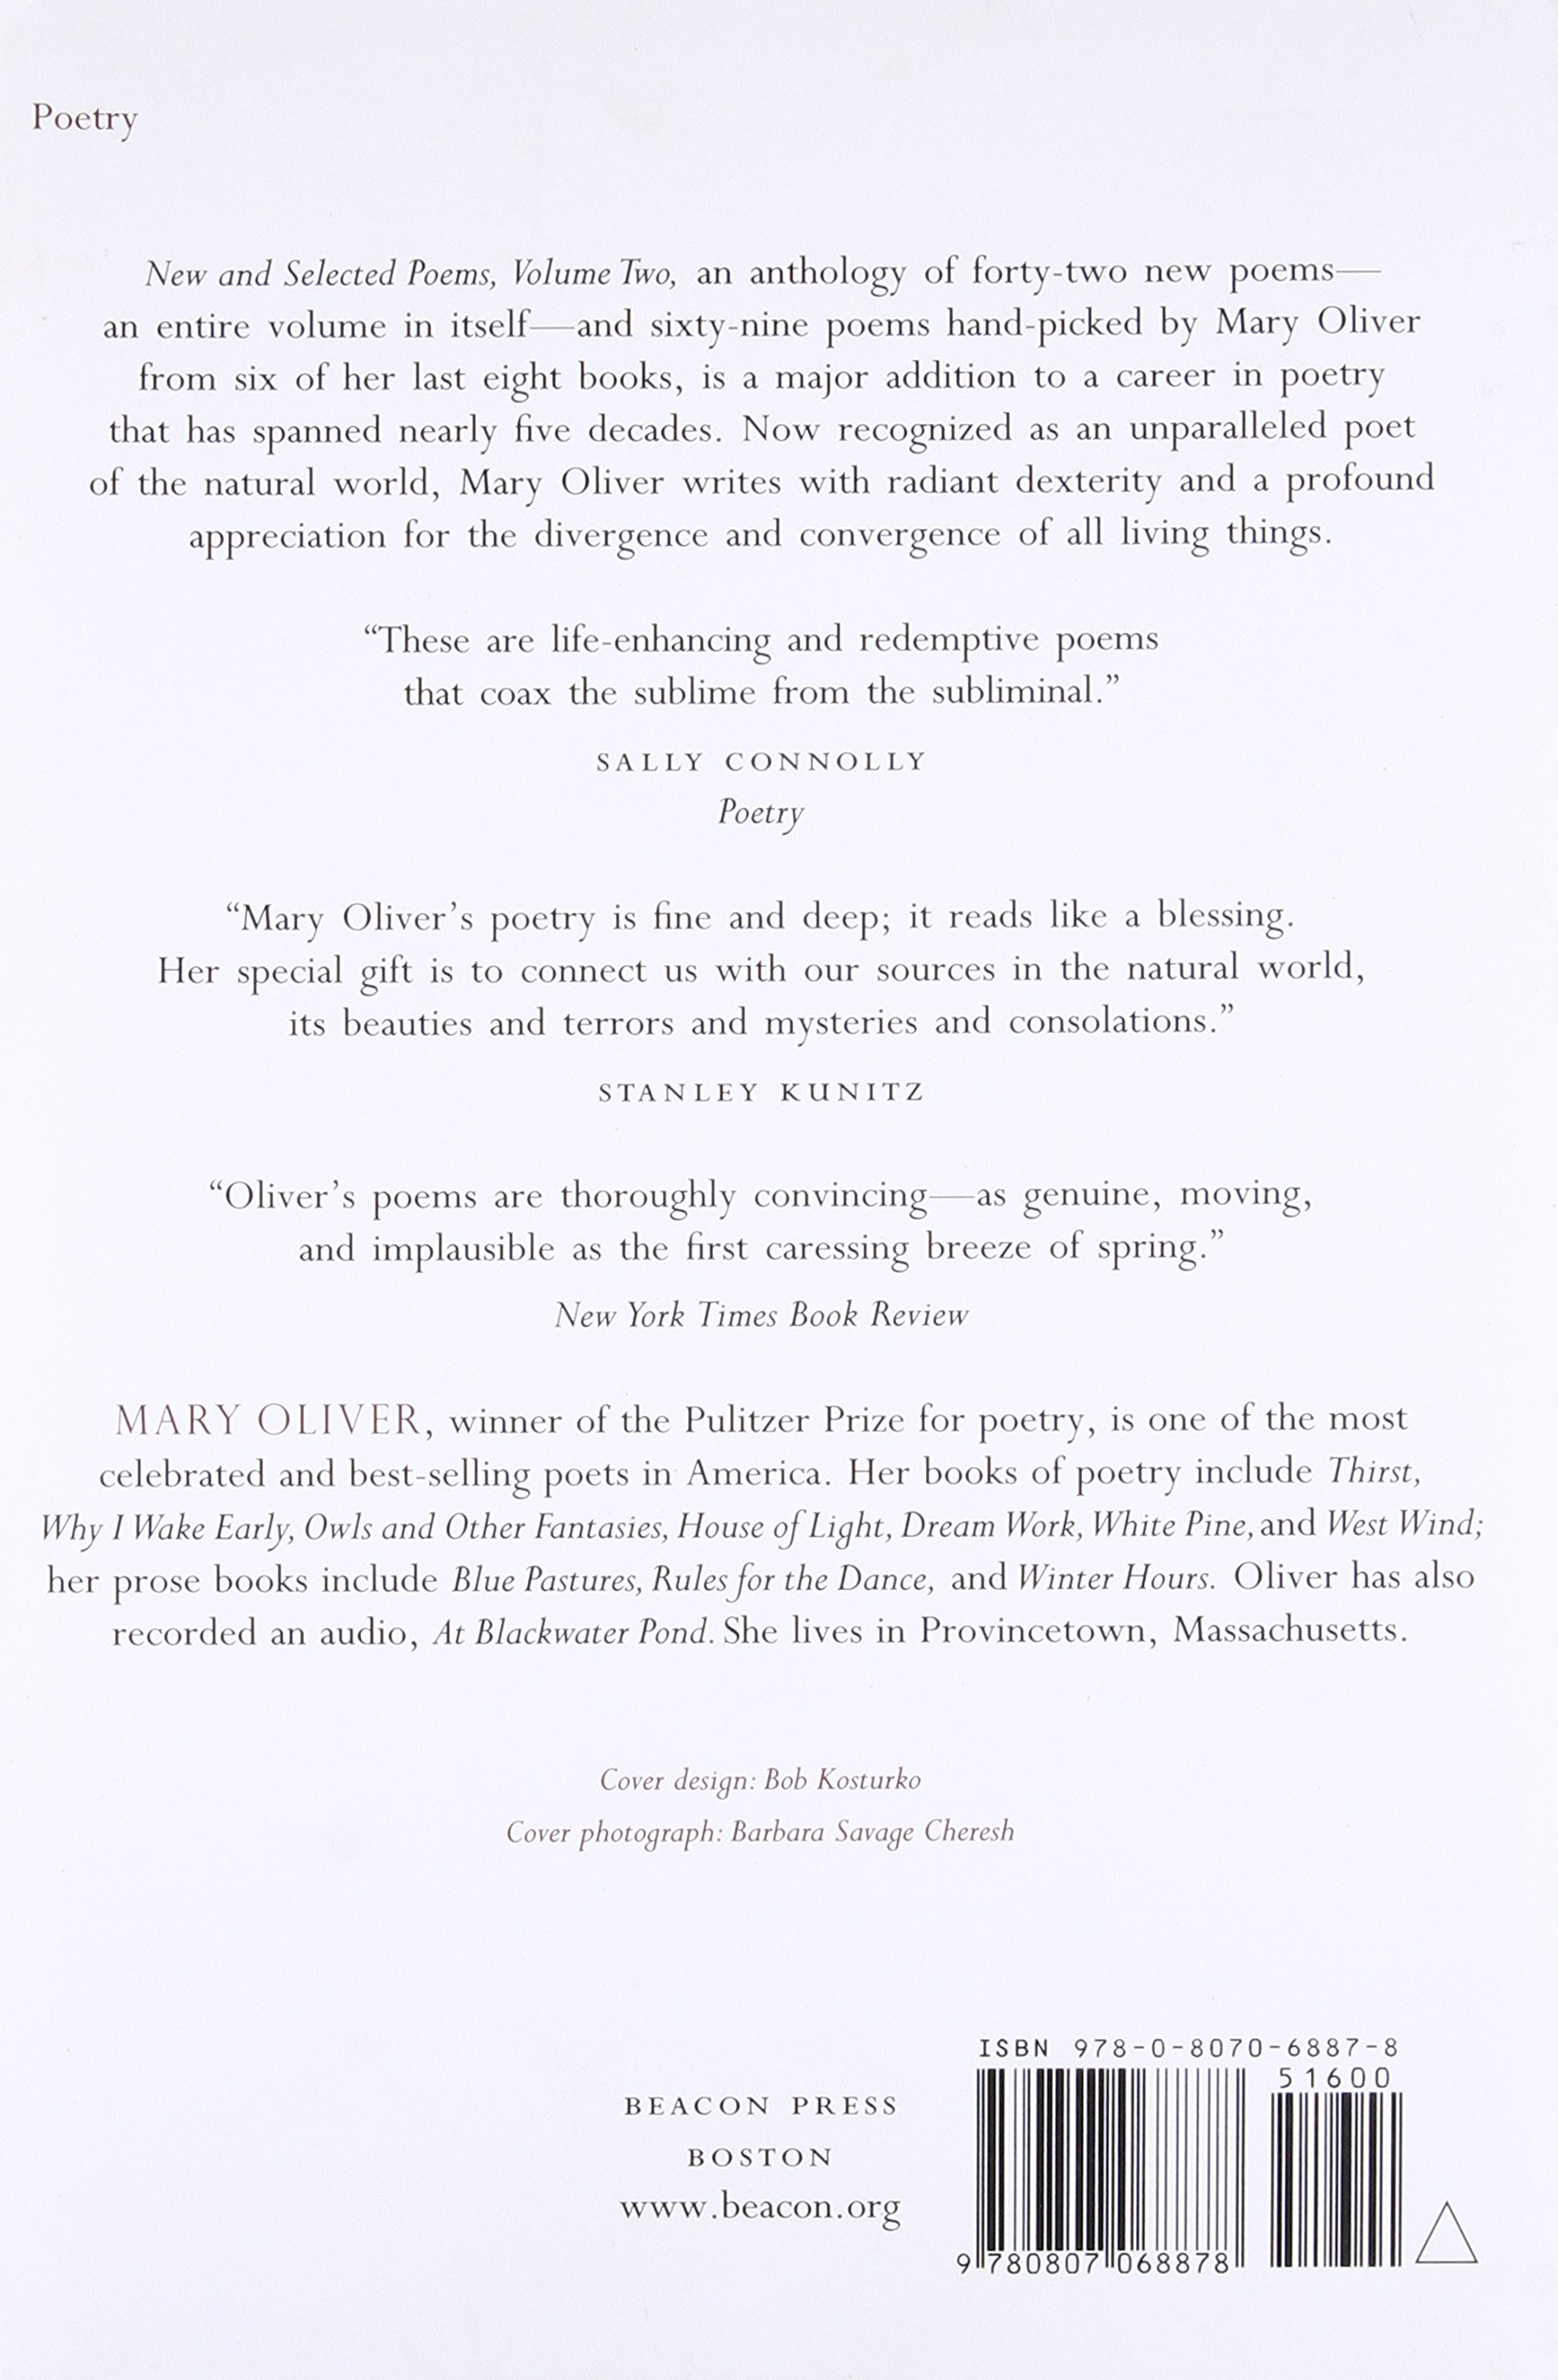 new and selected poems vol 2 mary oliver 9780807068878 amazon